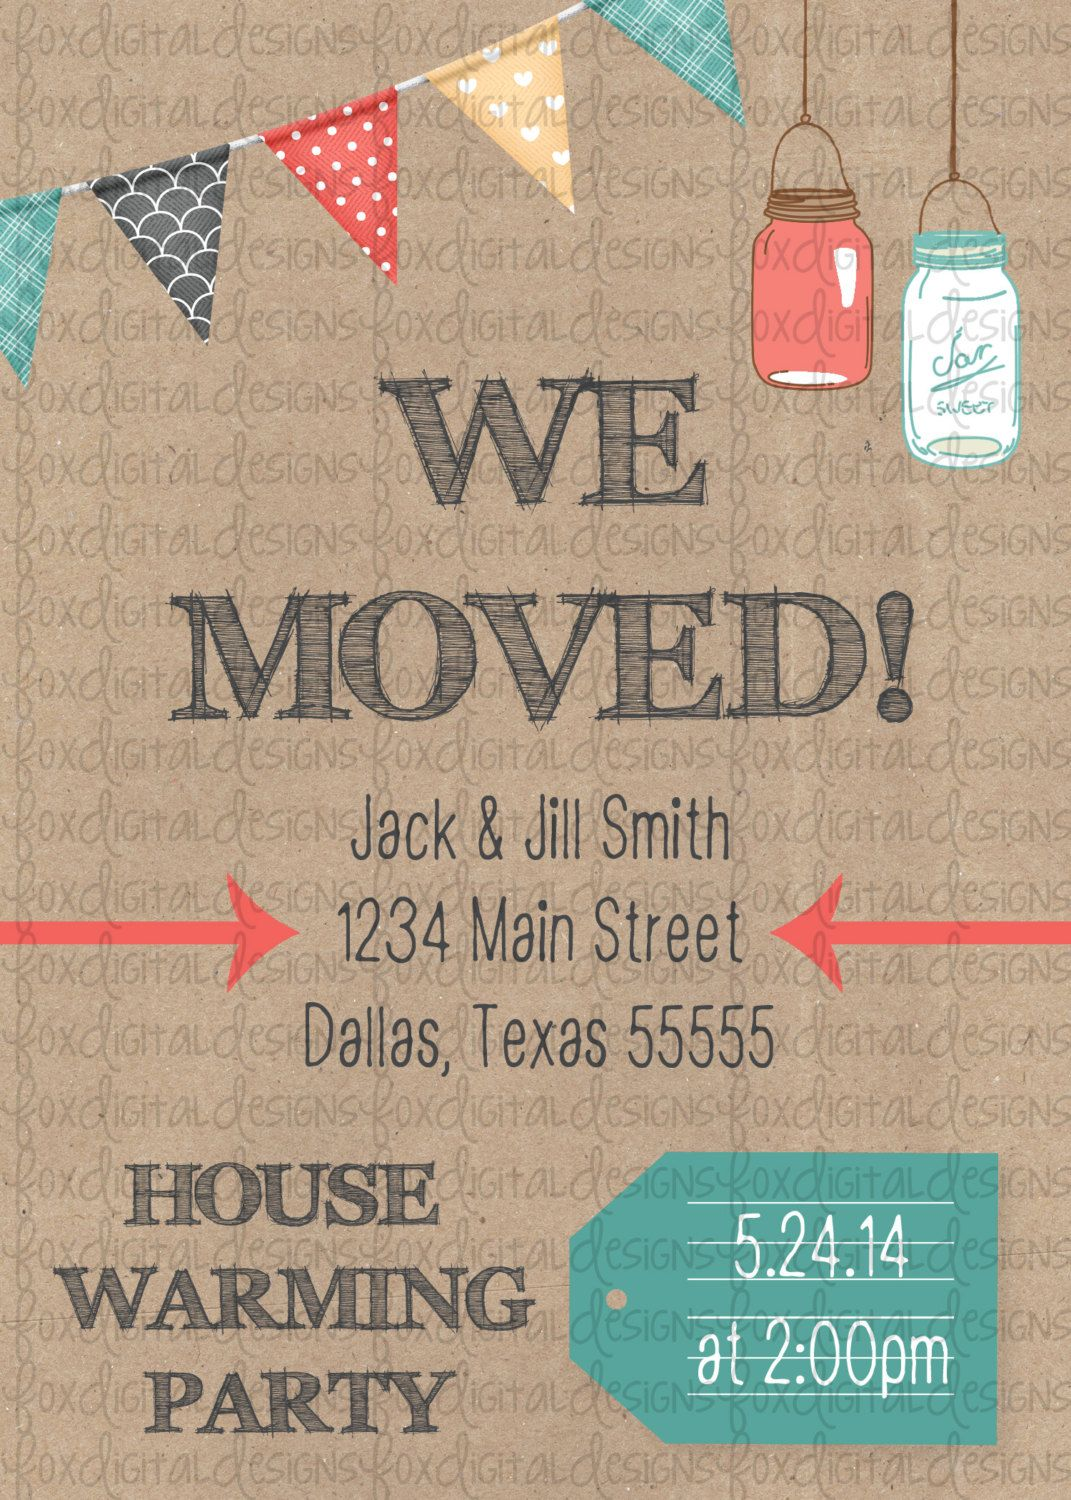 Mason Jar Banner We Ve Moved House Warming By Foxdigitaldesigns 10 00 House Warming Invitations Housewarming Party Open House Parties